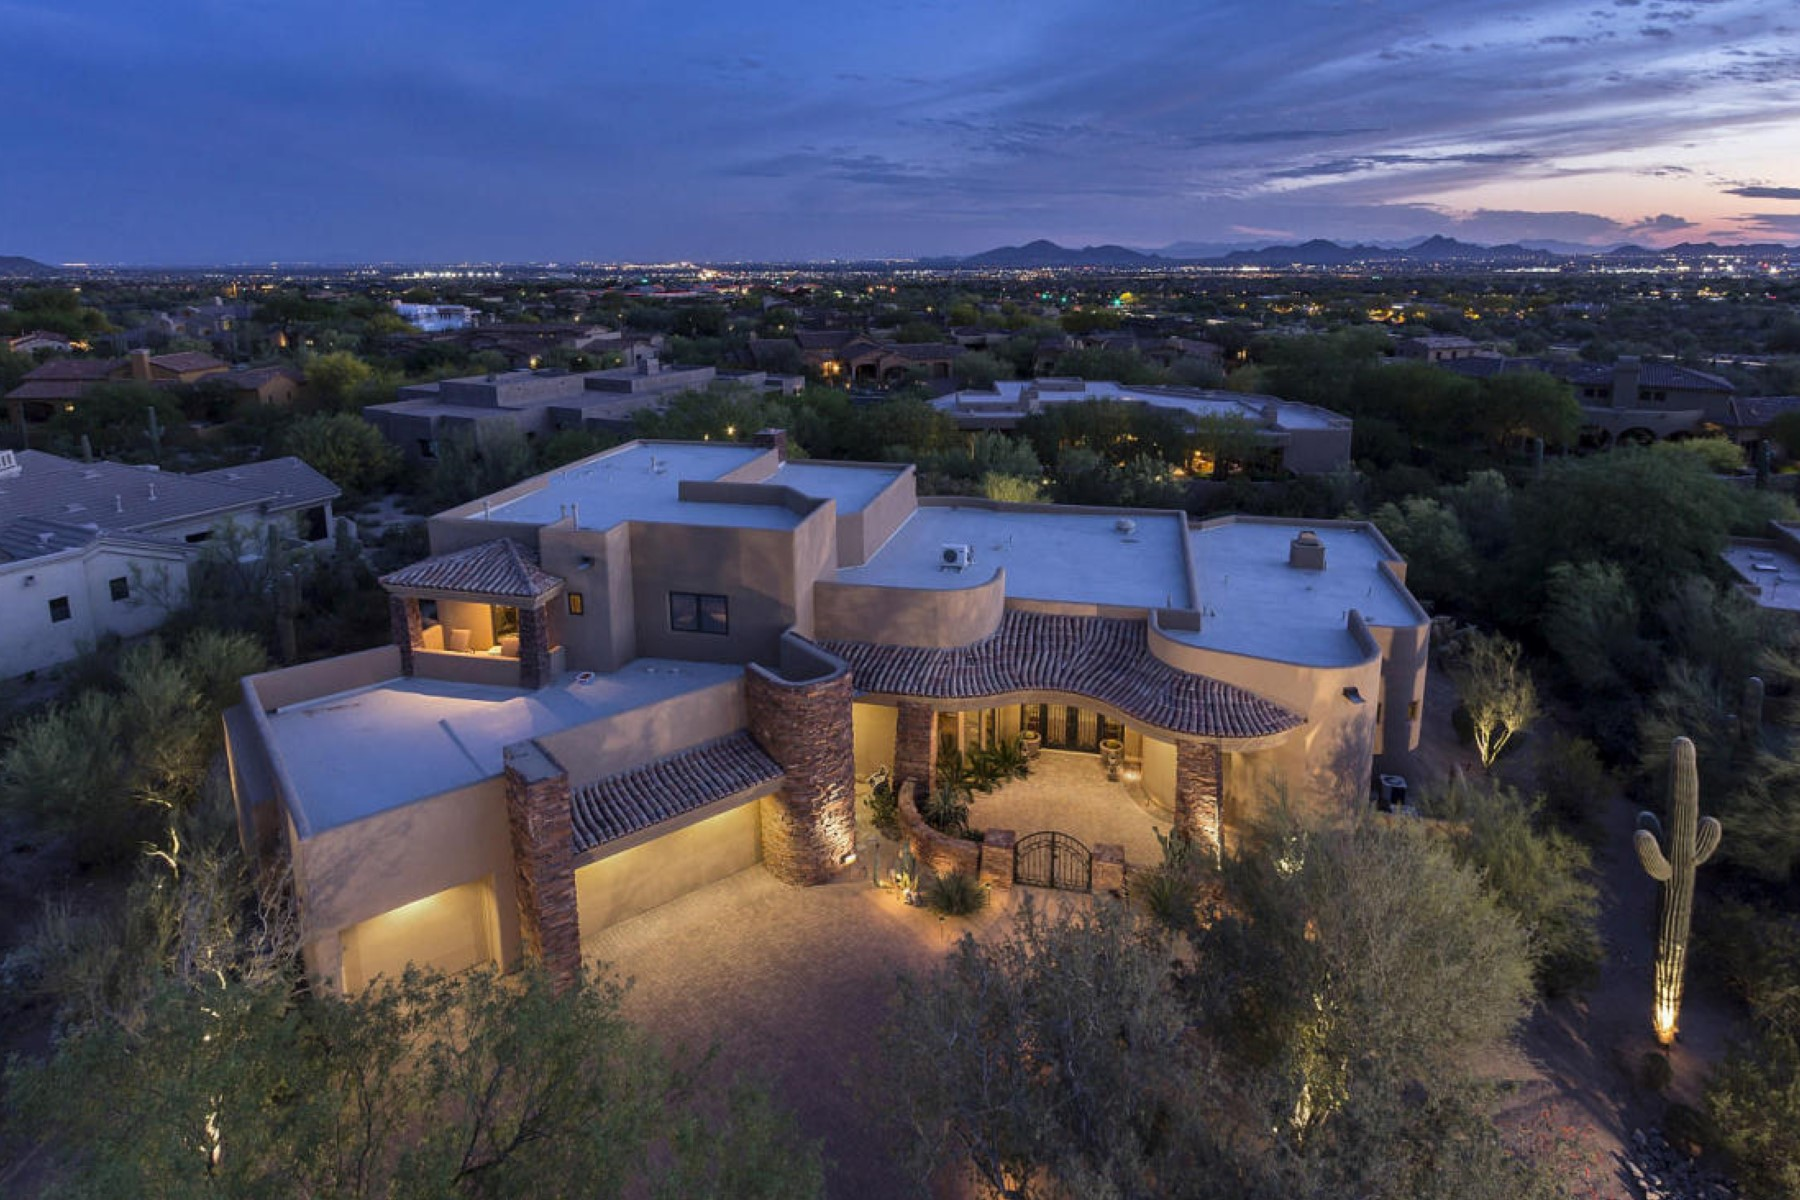 Single Family Home for Sale at Gorgeous Custom Home Located In Prestigious Country Club At DC Ranch 9290 E Thompson Peak Pkwy #417 Scottsdale, Arizona 85255 United States